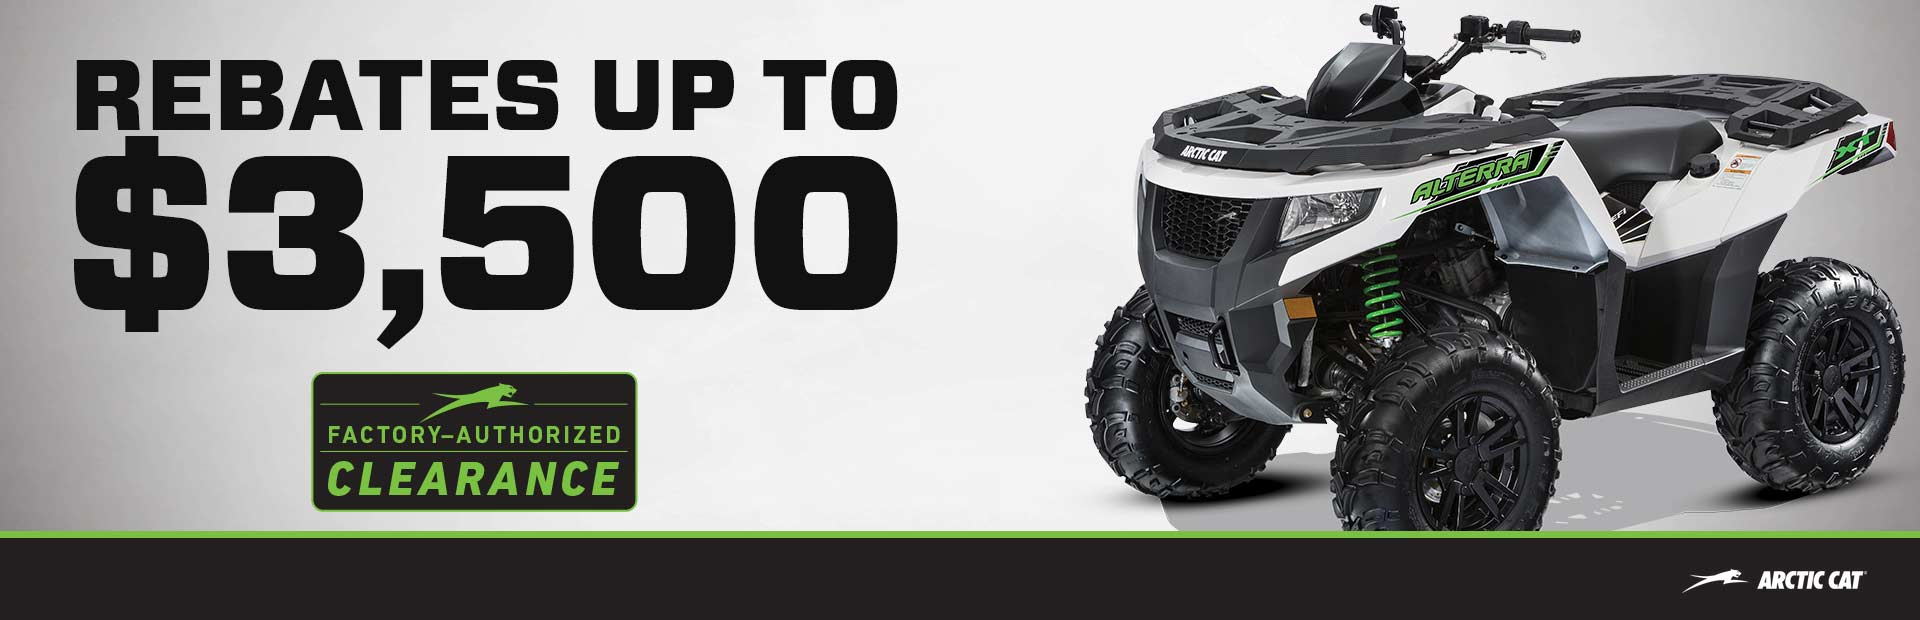 2018 Textron / Arctic CatATVs!2.99% financing for 60 months + rebates up to $3,500!Huge savings!